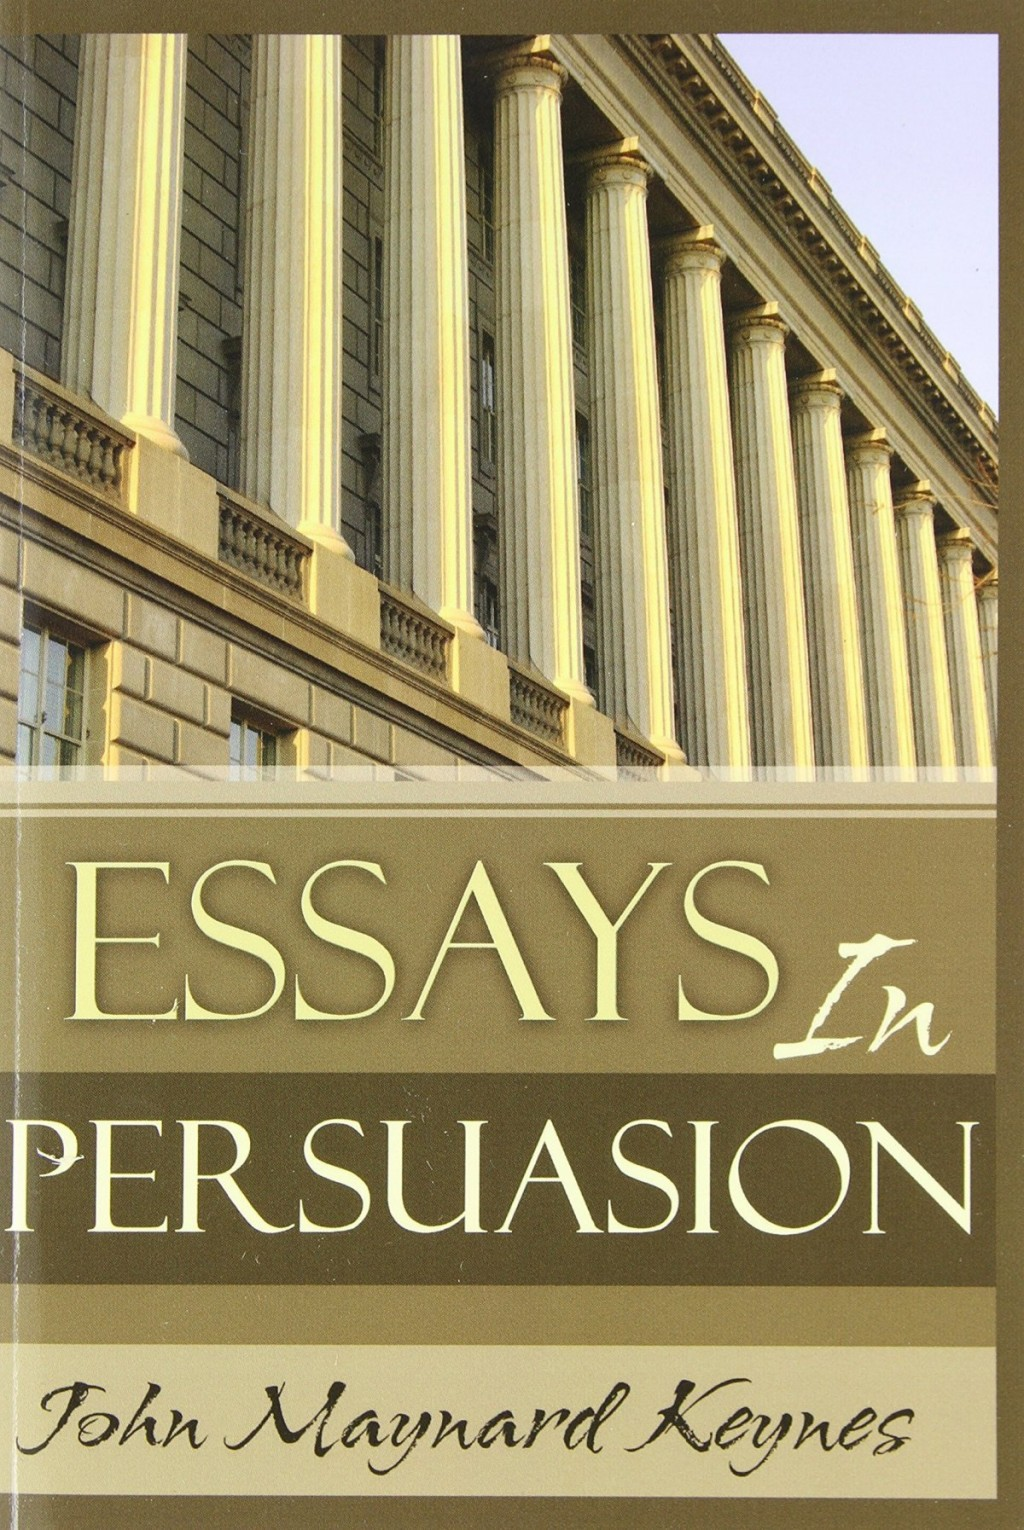 009 Essays In Persuasion By John Maynard Keynes Essay Remarkable 1931 Wikipedia Summary Large